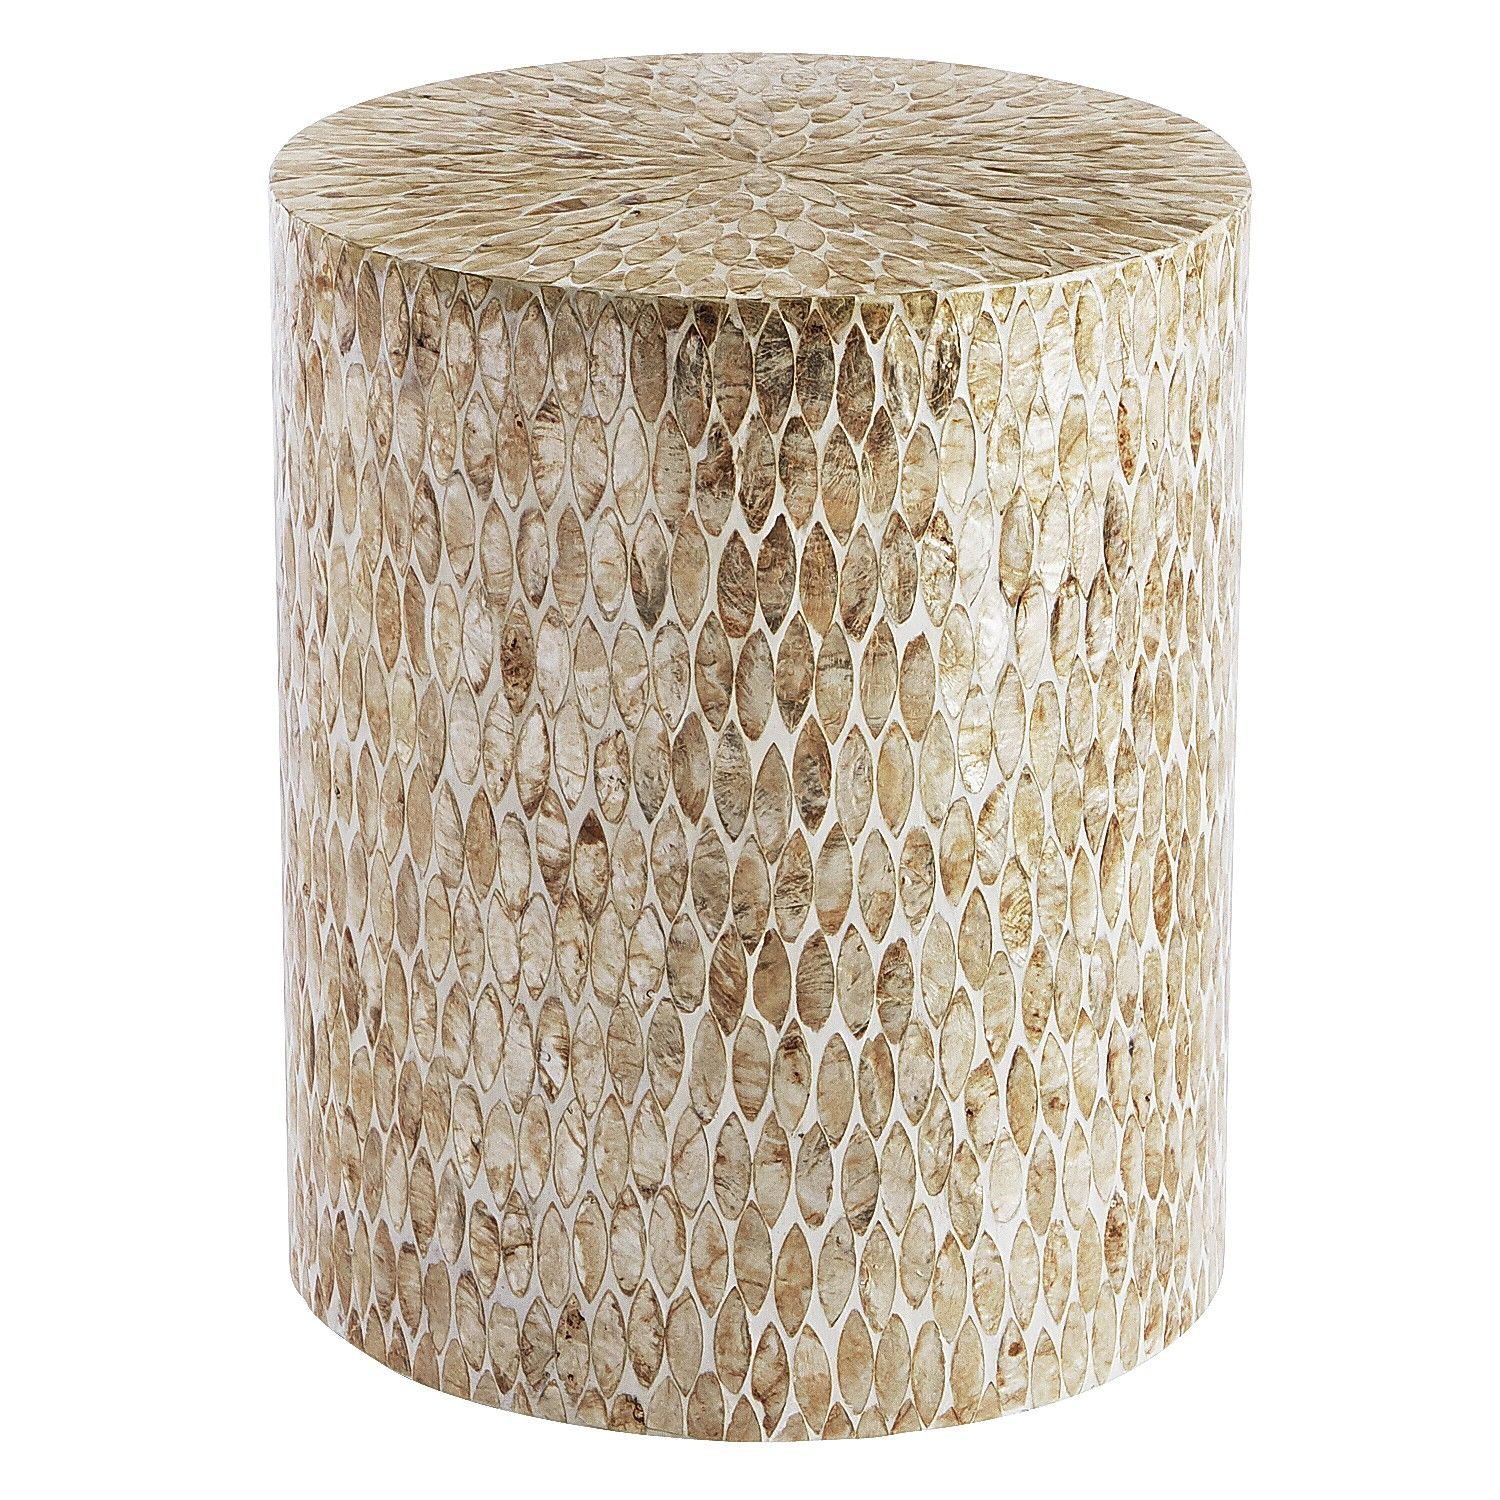 capiz round drum accent table pier imports marble avani mango wood gold dark brown coffee square toronto patio white top bedside next living room furniture brass nautical lights